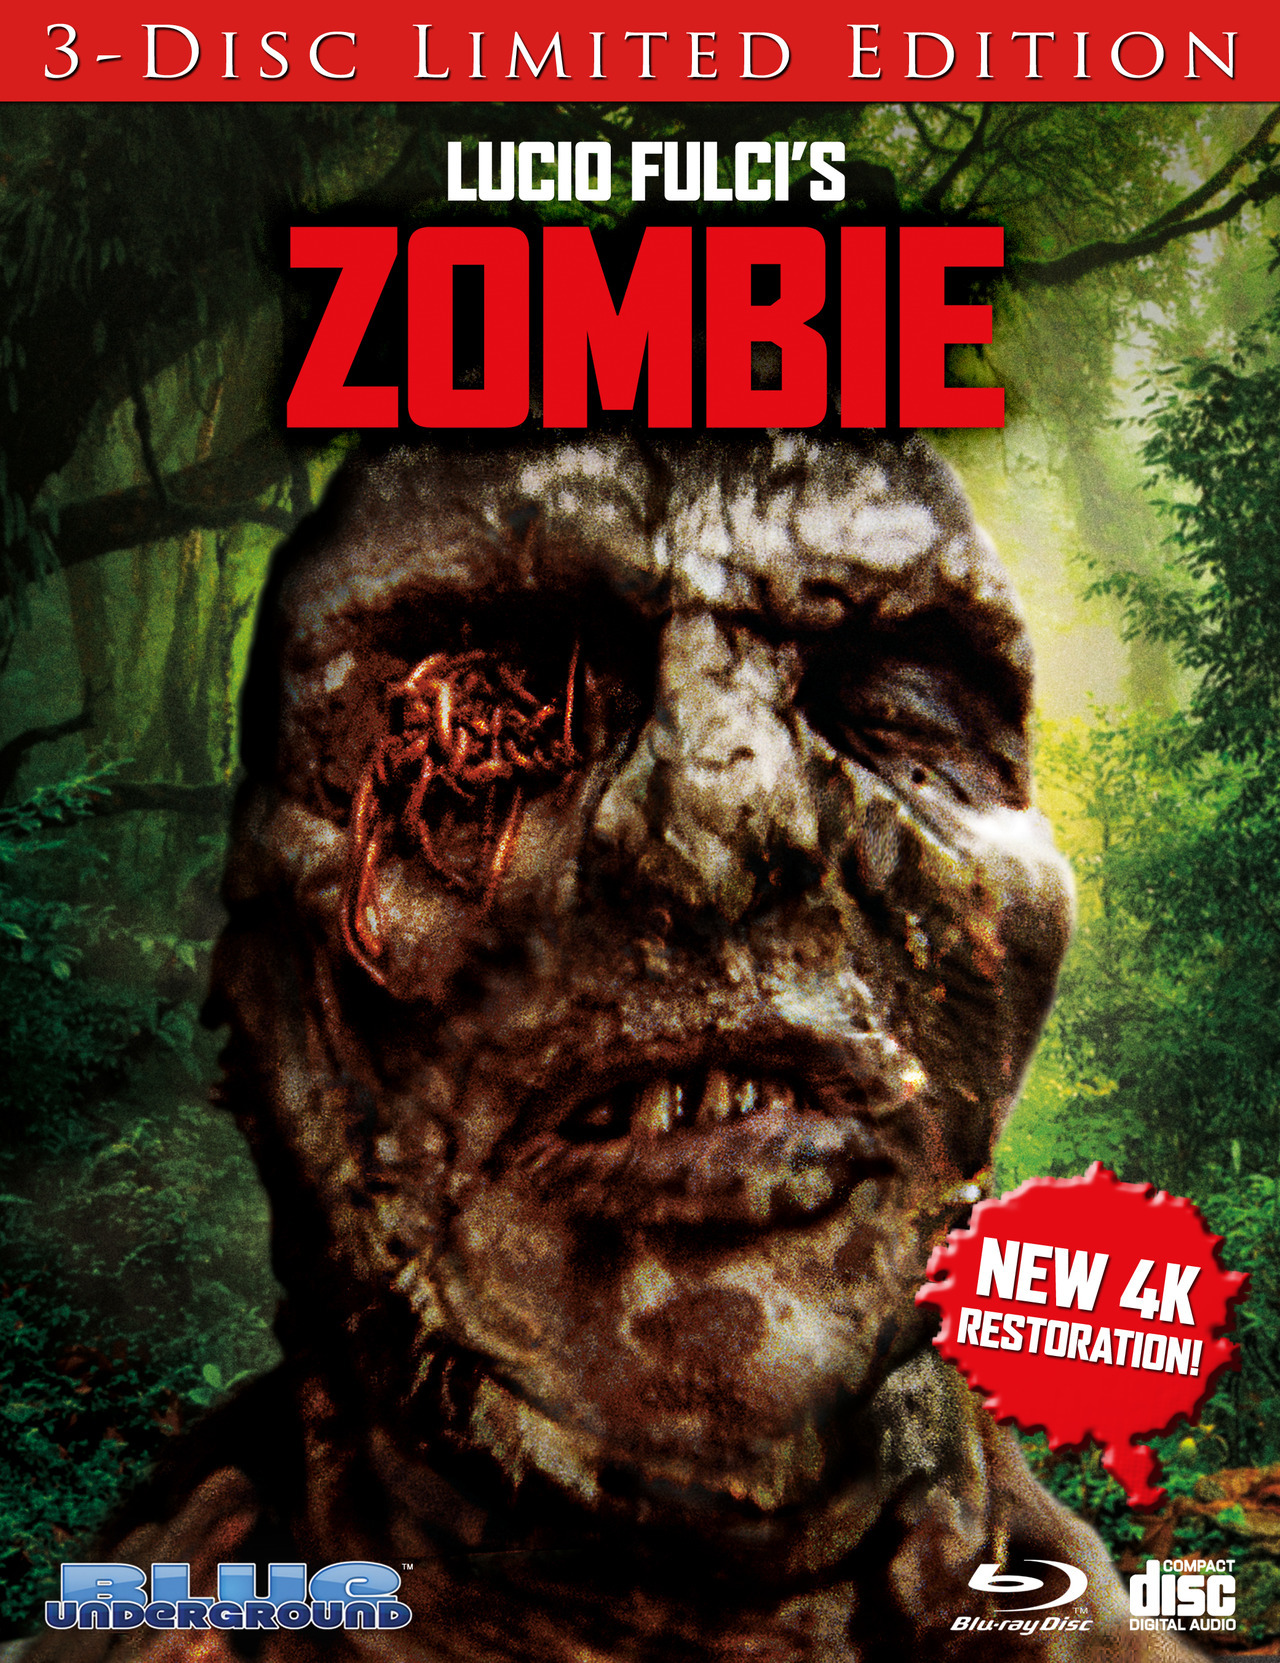 Zombie Limited Edition Blu-ray Review #2 (Blue Underground) - Cultsploitation